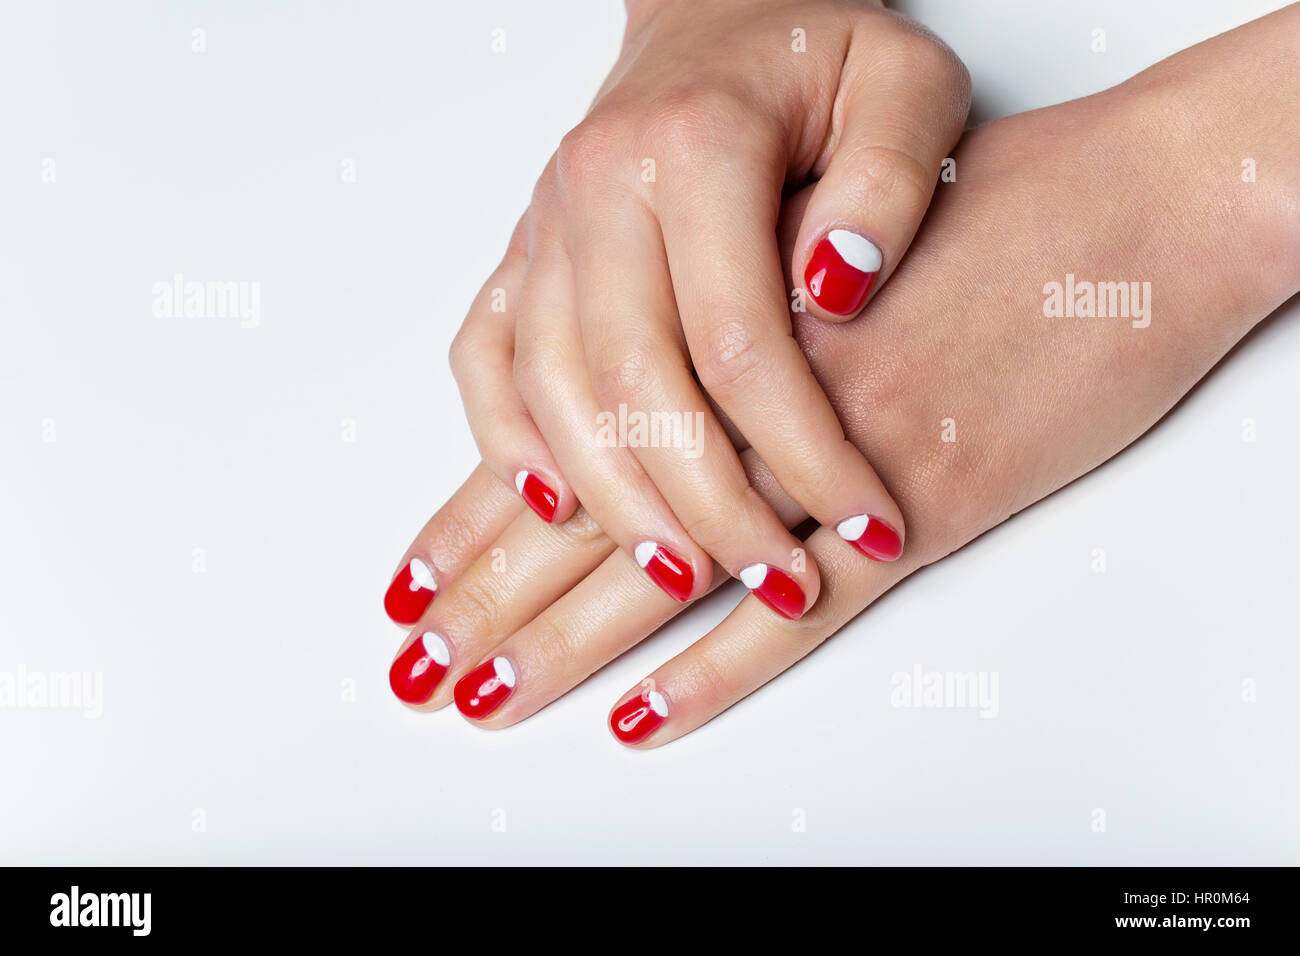 Female hands with red and white nails Stock Photo: 134625516 - Alamy